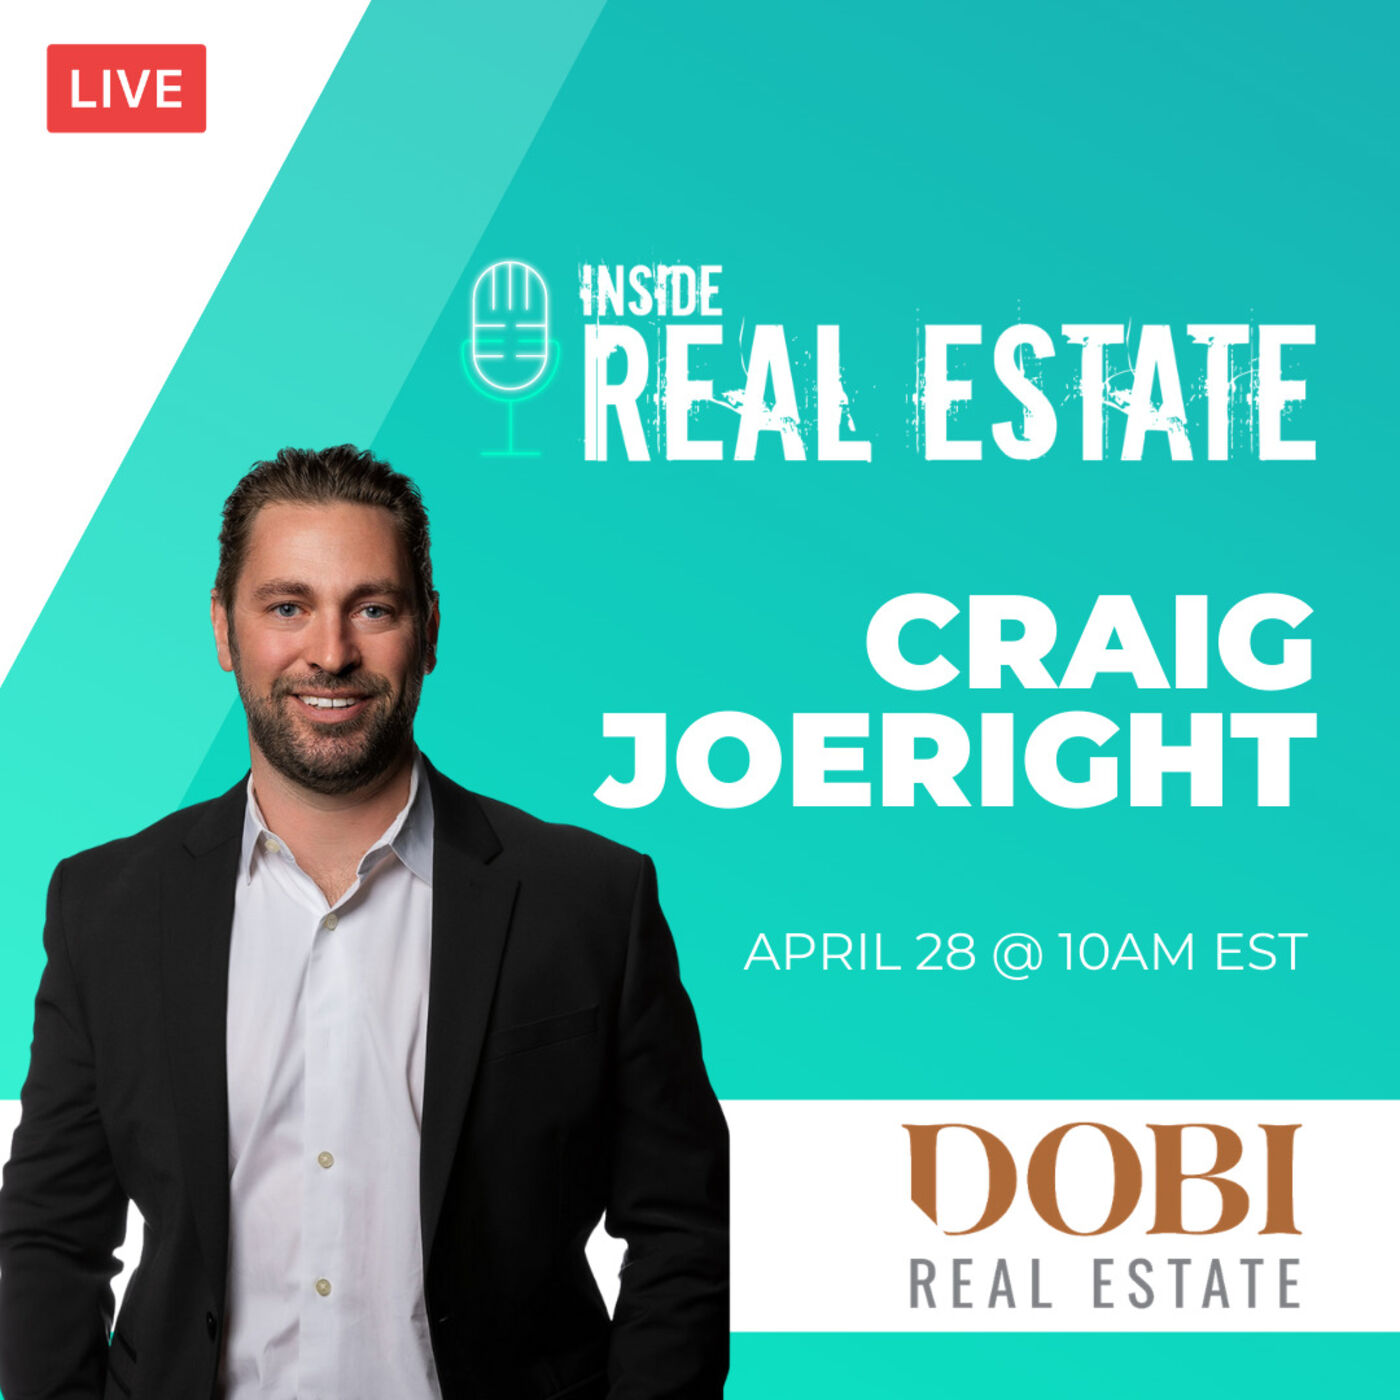 Craig Joeright, DOBI Real Estate - Appraisal Waivers, Buyer Remorse, and What You Need to Know